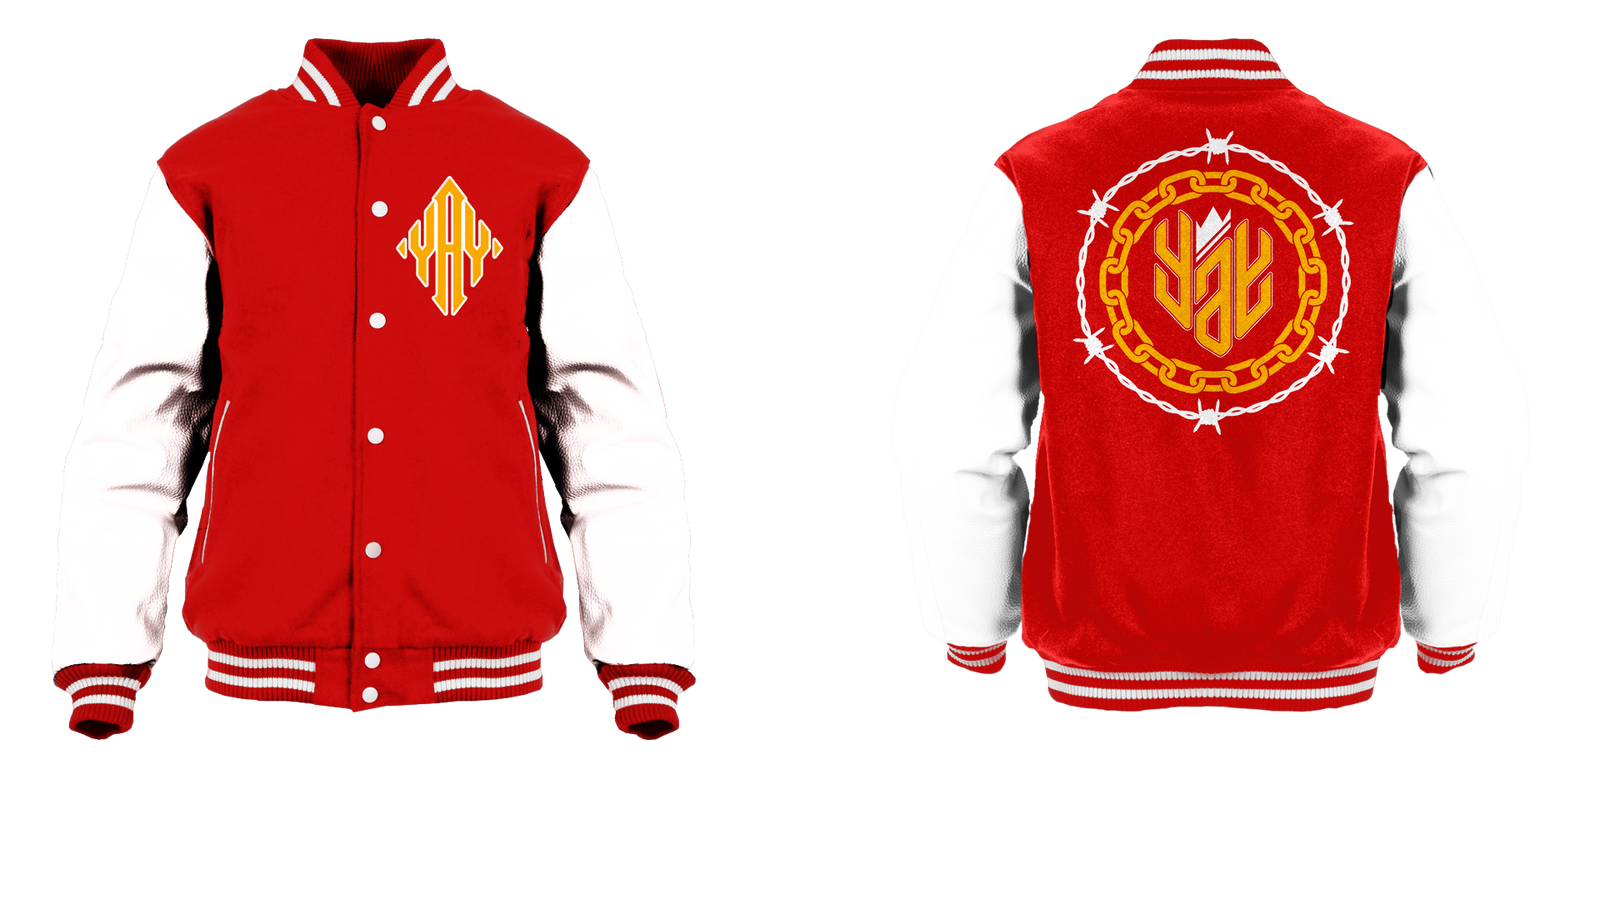 New Barbed and Chained Yay Diamond Logo Varsity Jacket